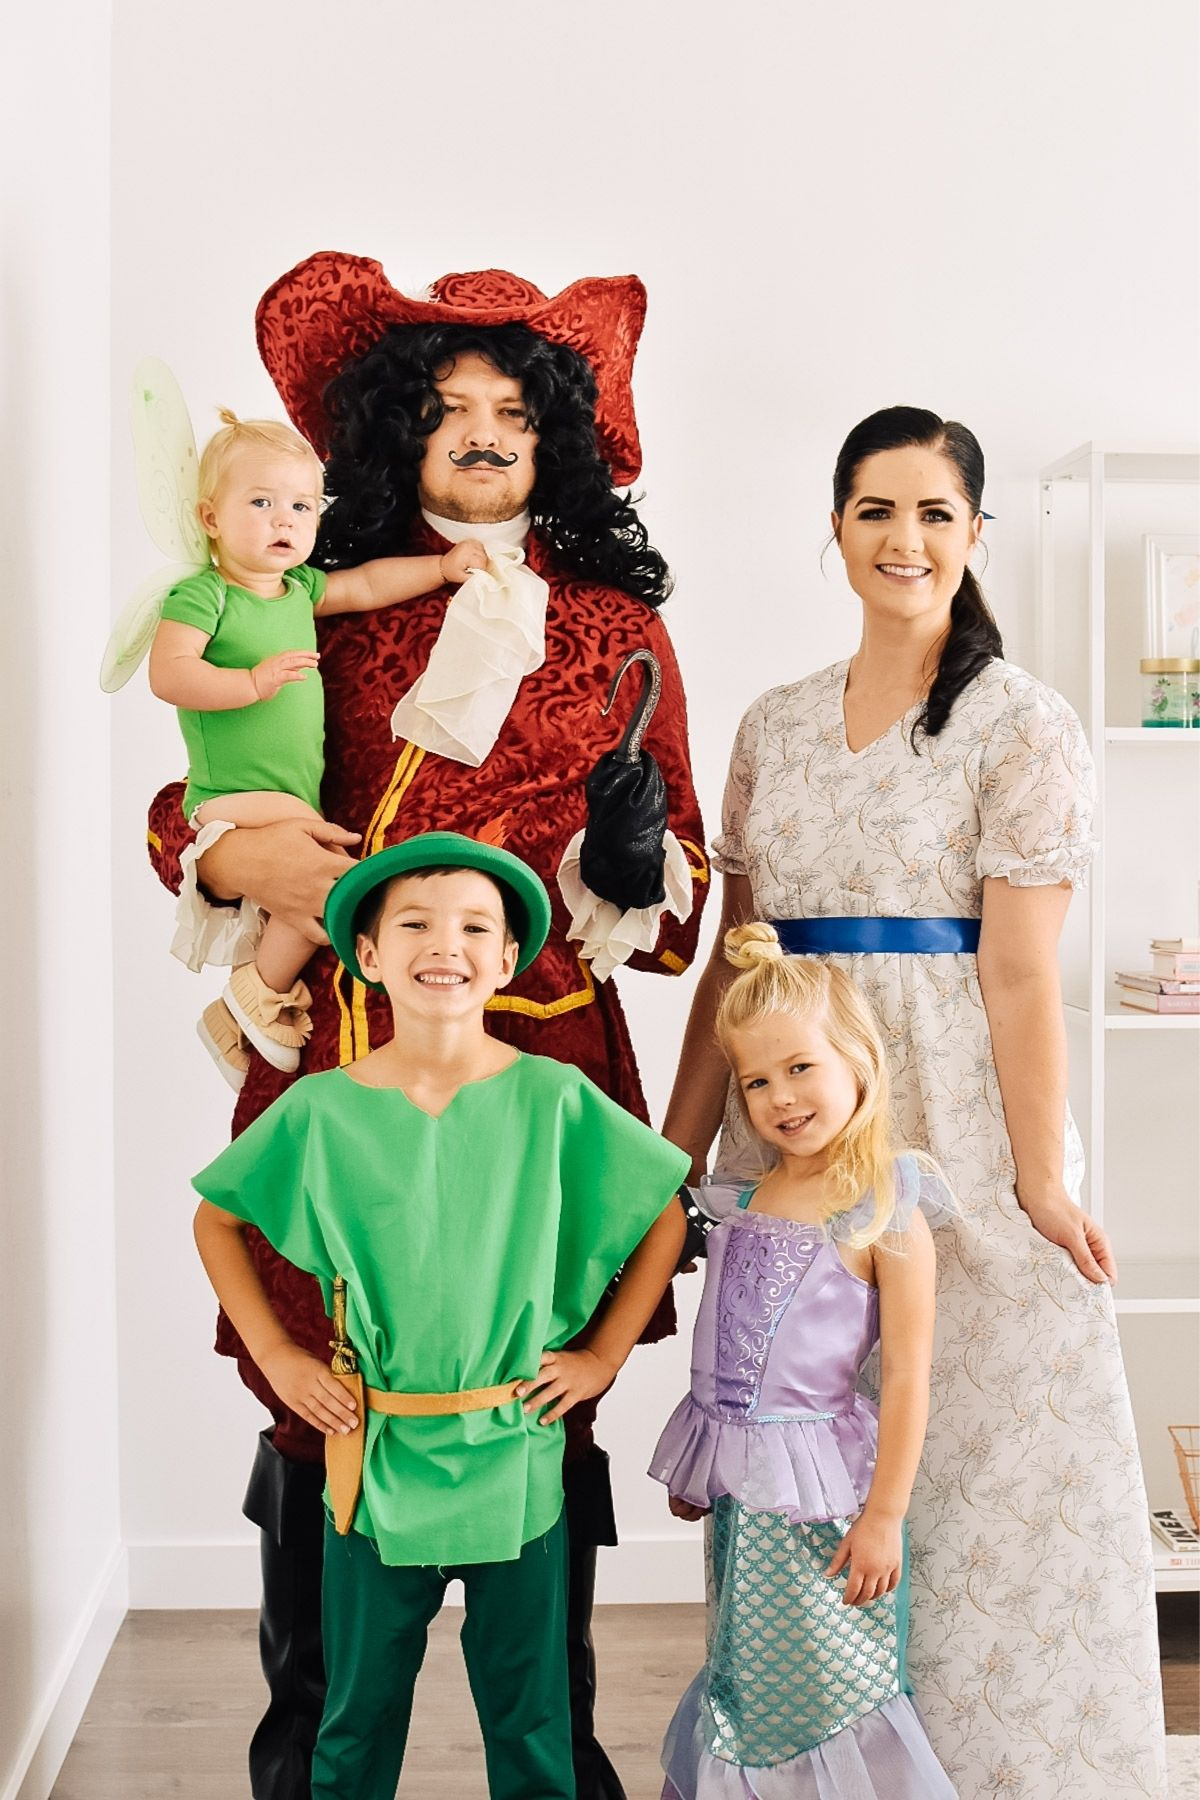 Family wearing Peter Pan character costumes smiles in front of white wall.